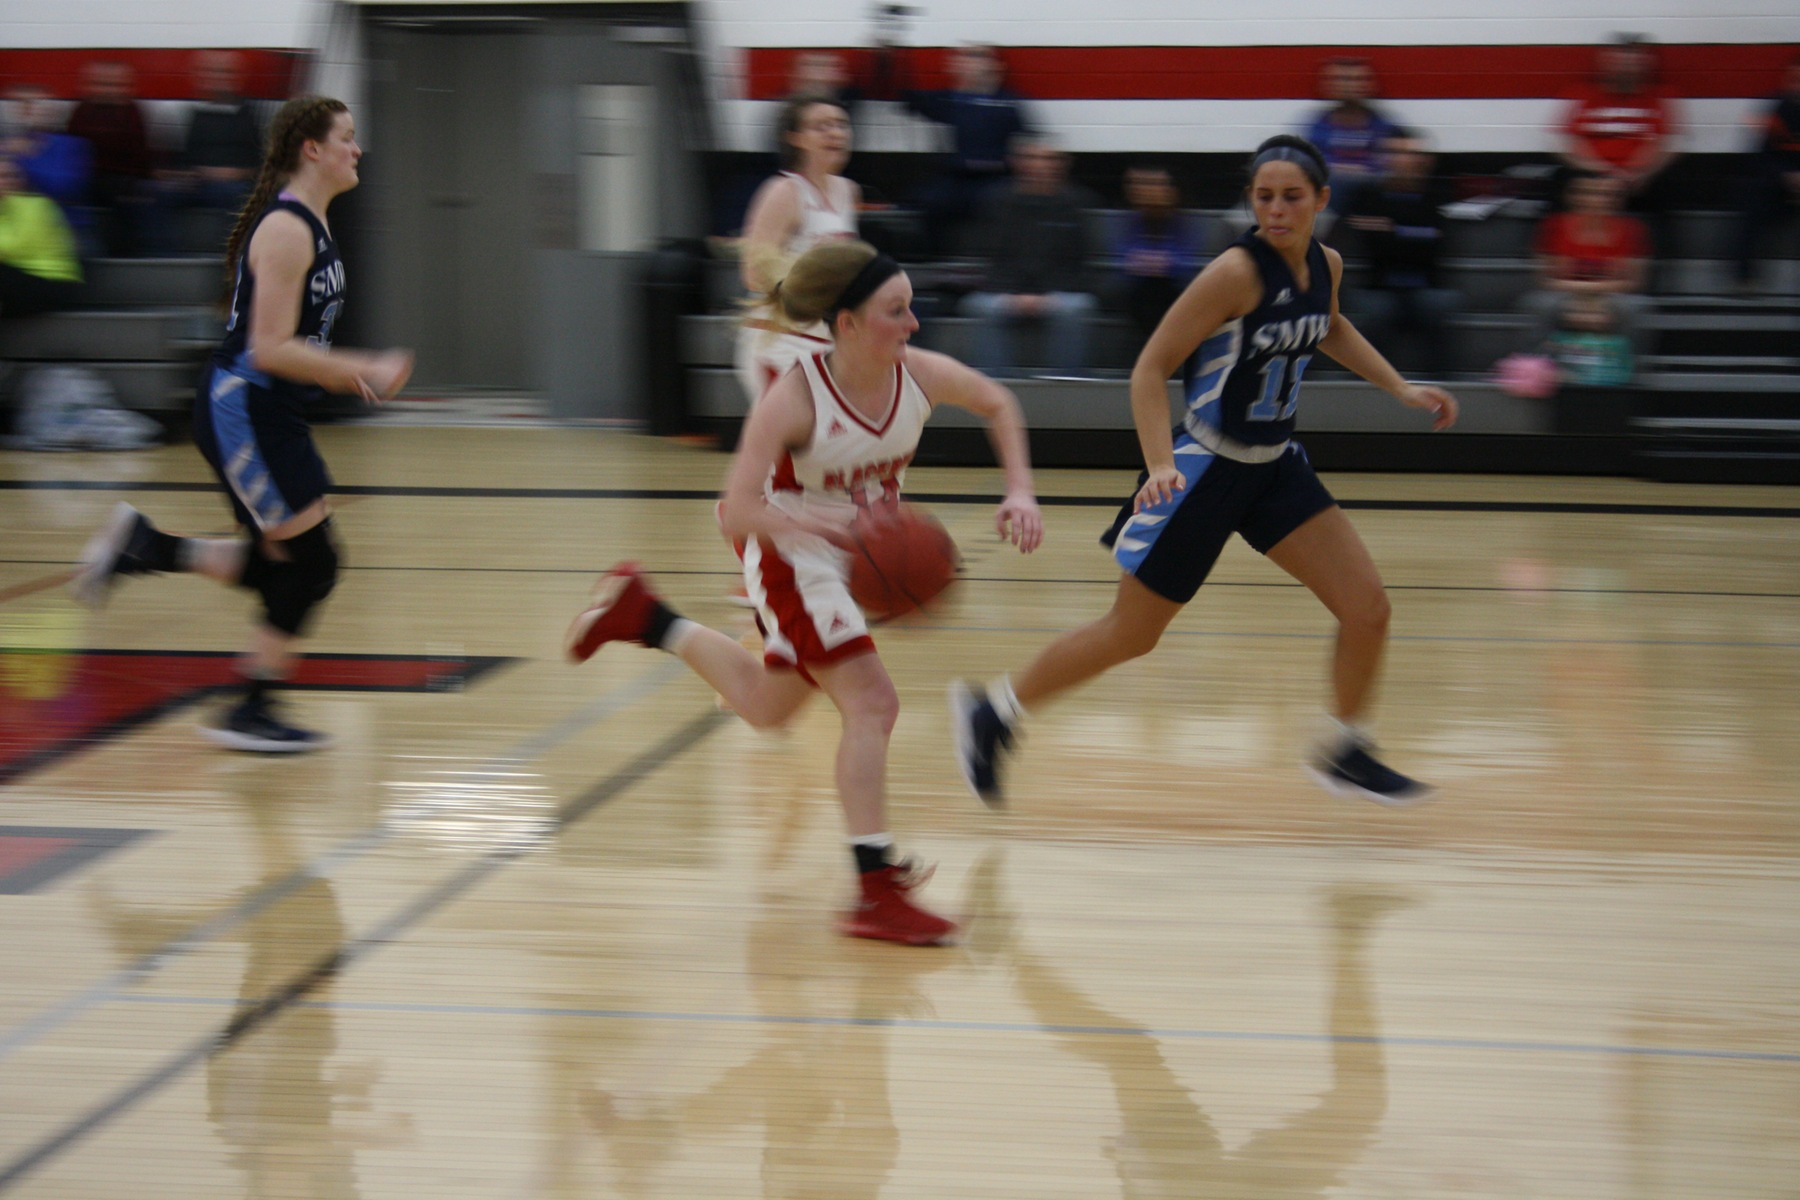 Annika Ochs (14) drives up the middle into the Beavers offensive end